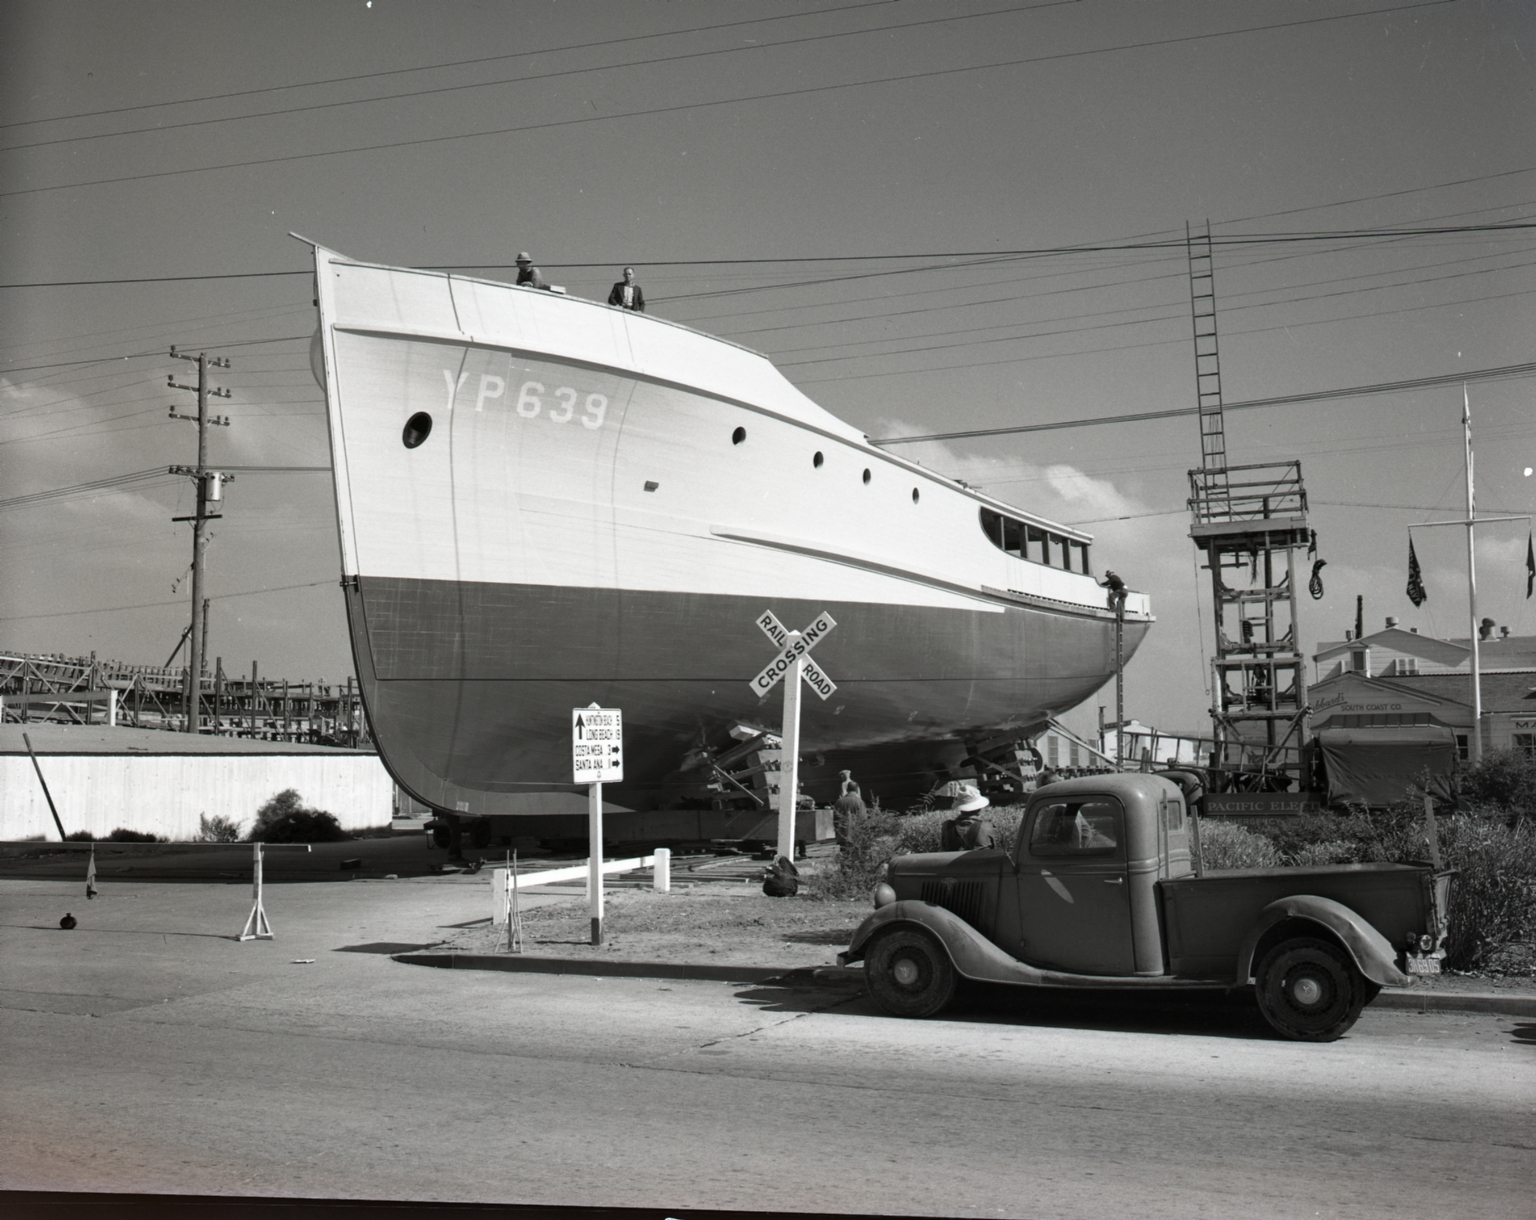 Moving a Yard Patrol boat (YP 639) build by Hubbard's South Coast Company for the US Navy.